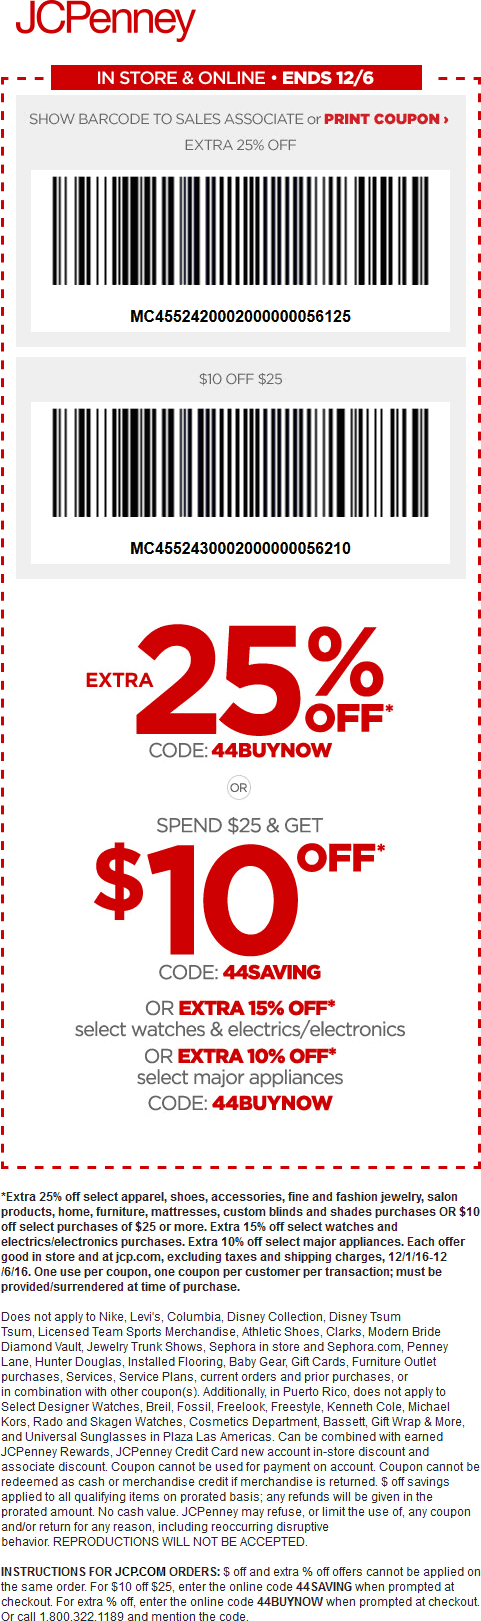 Jcpenney 10 off 10 coupon 2019